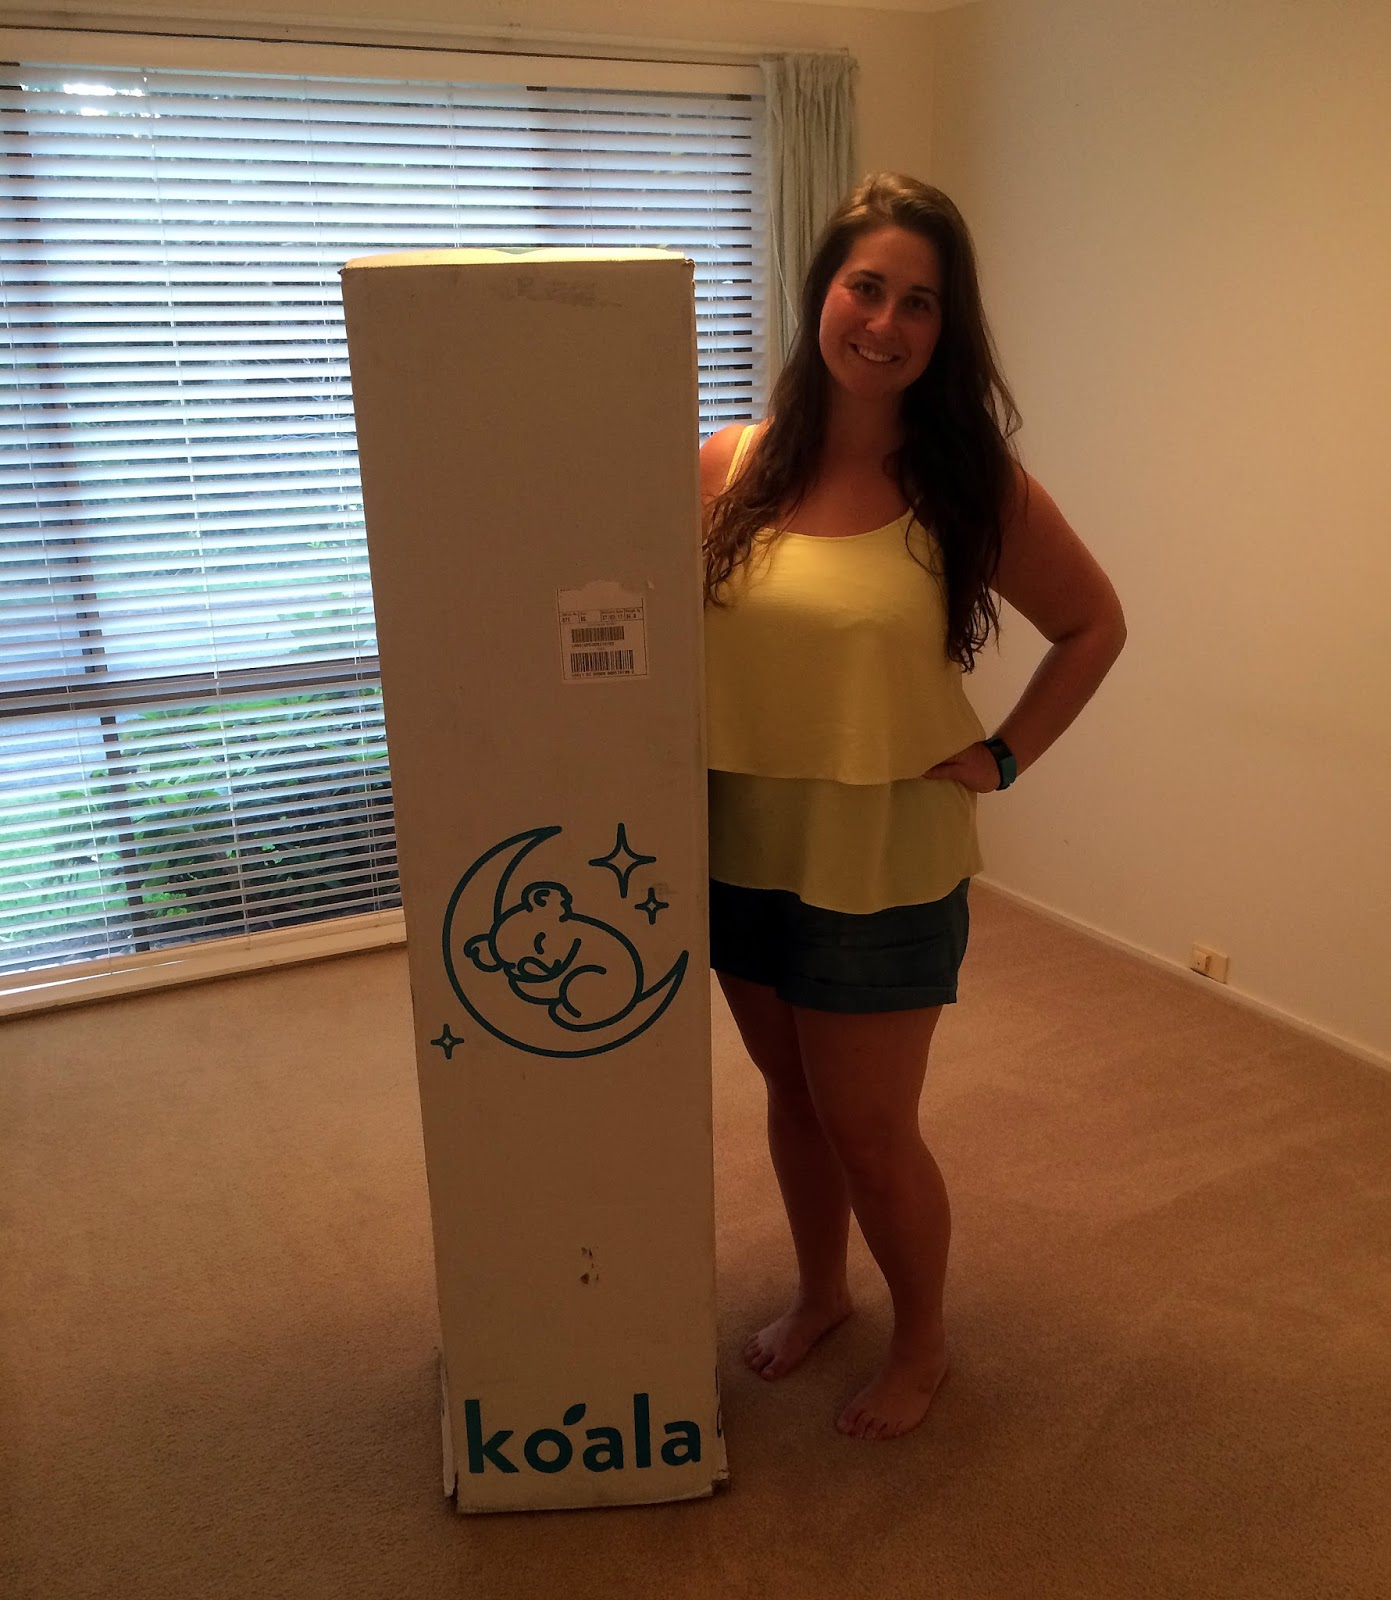 Girl with Koala Mattress-In-a-Box